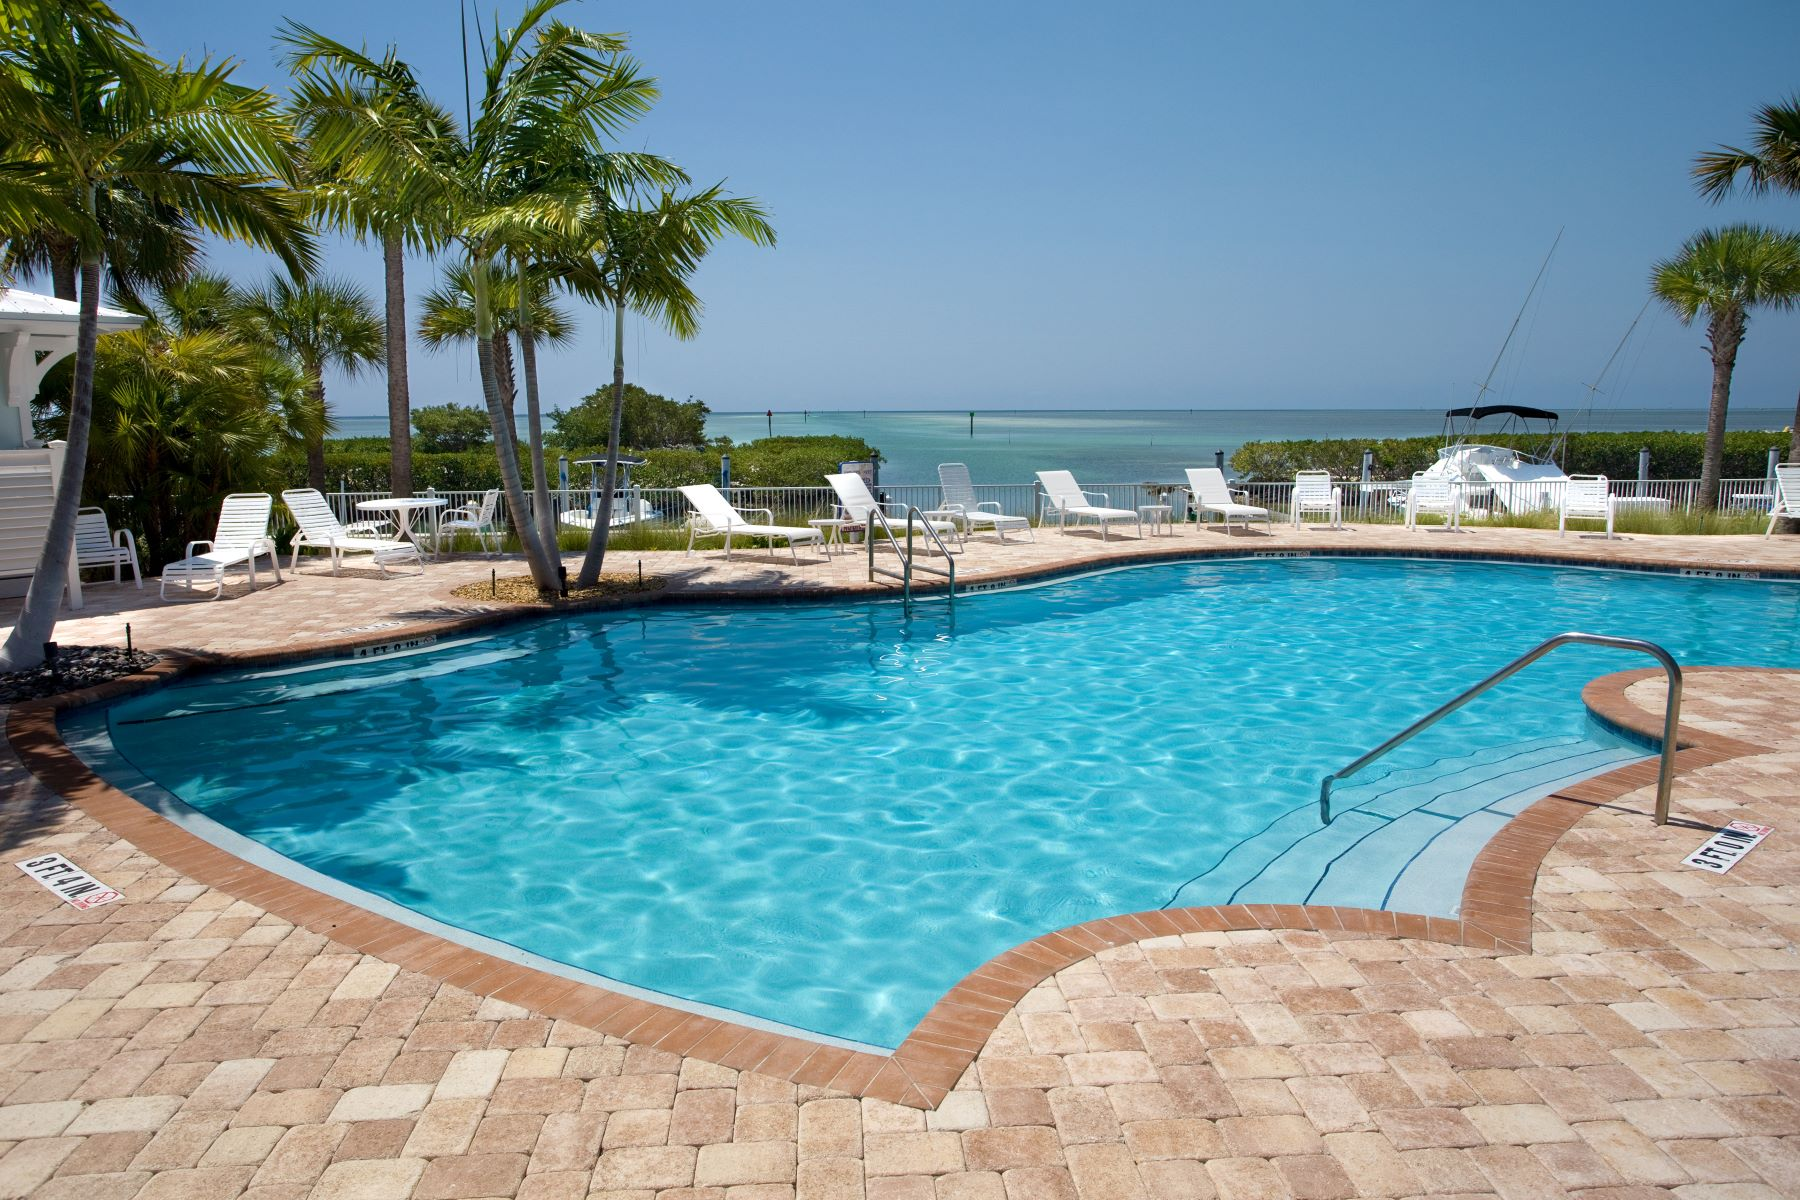 Single Family Home for Rent at Angler's Reef 84977 Old Highway Islamorada, Florida 33036 United States